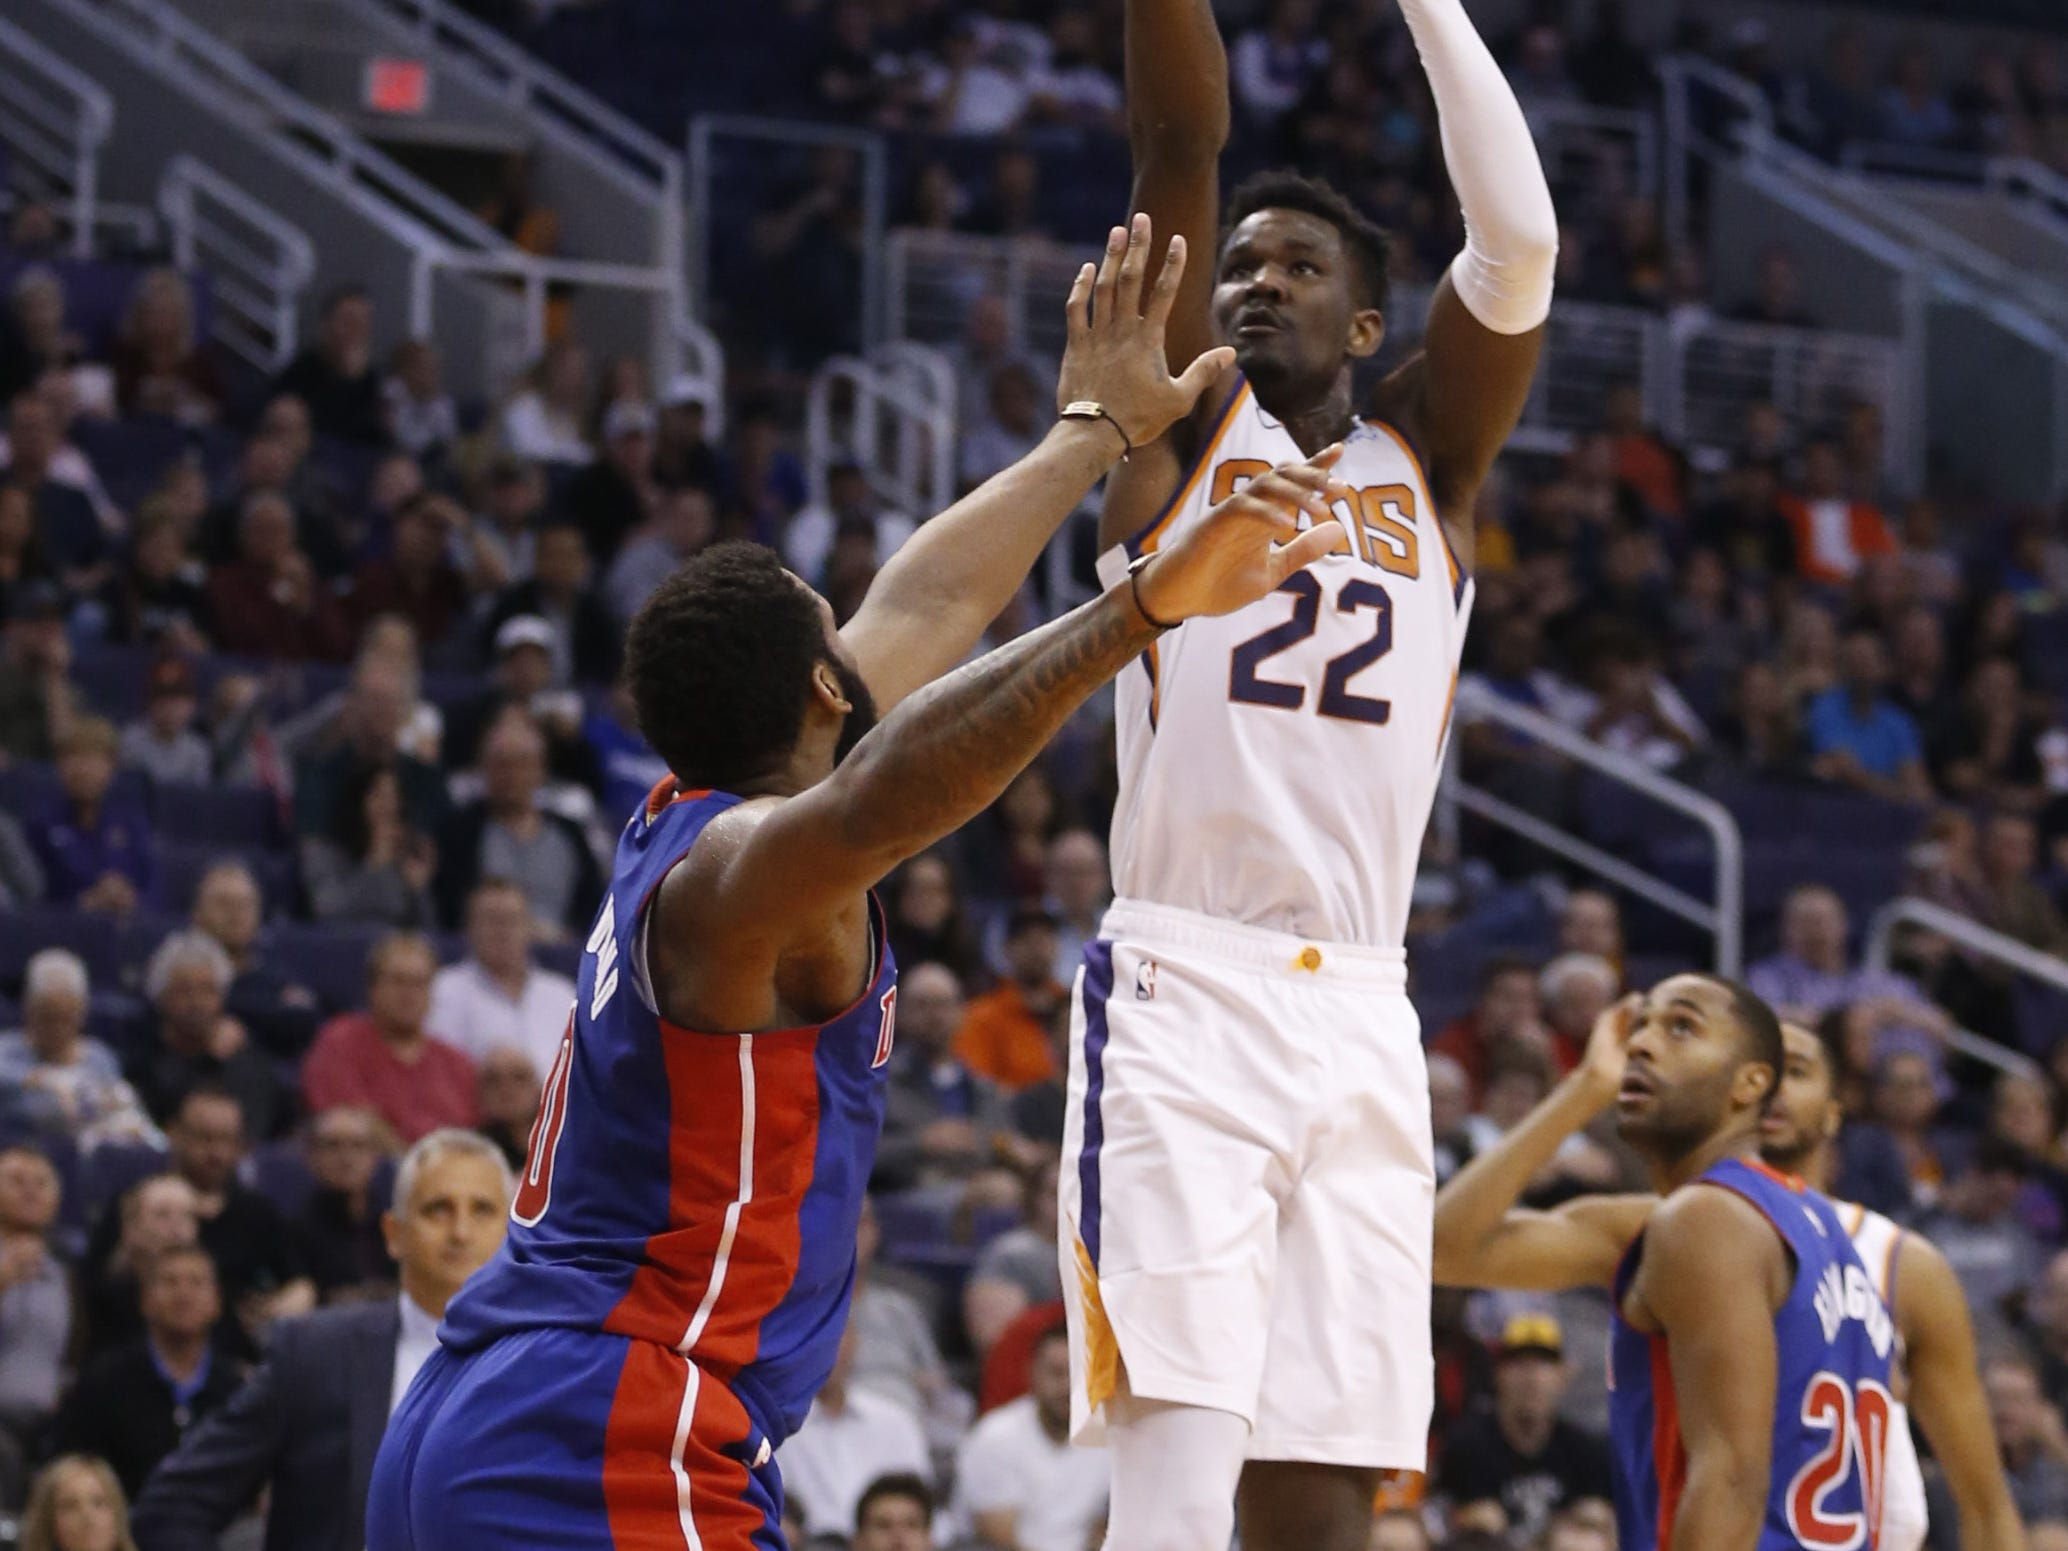 Suns' Deandre Ayton (22) shoots against Pistons' Andre Drummond (0) during the first half at the Talking Stick Resort Arena in Phoenix, Ariz. on March 21, 2019.